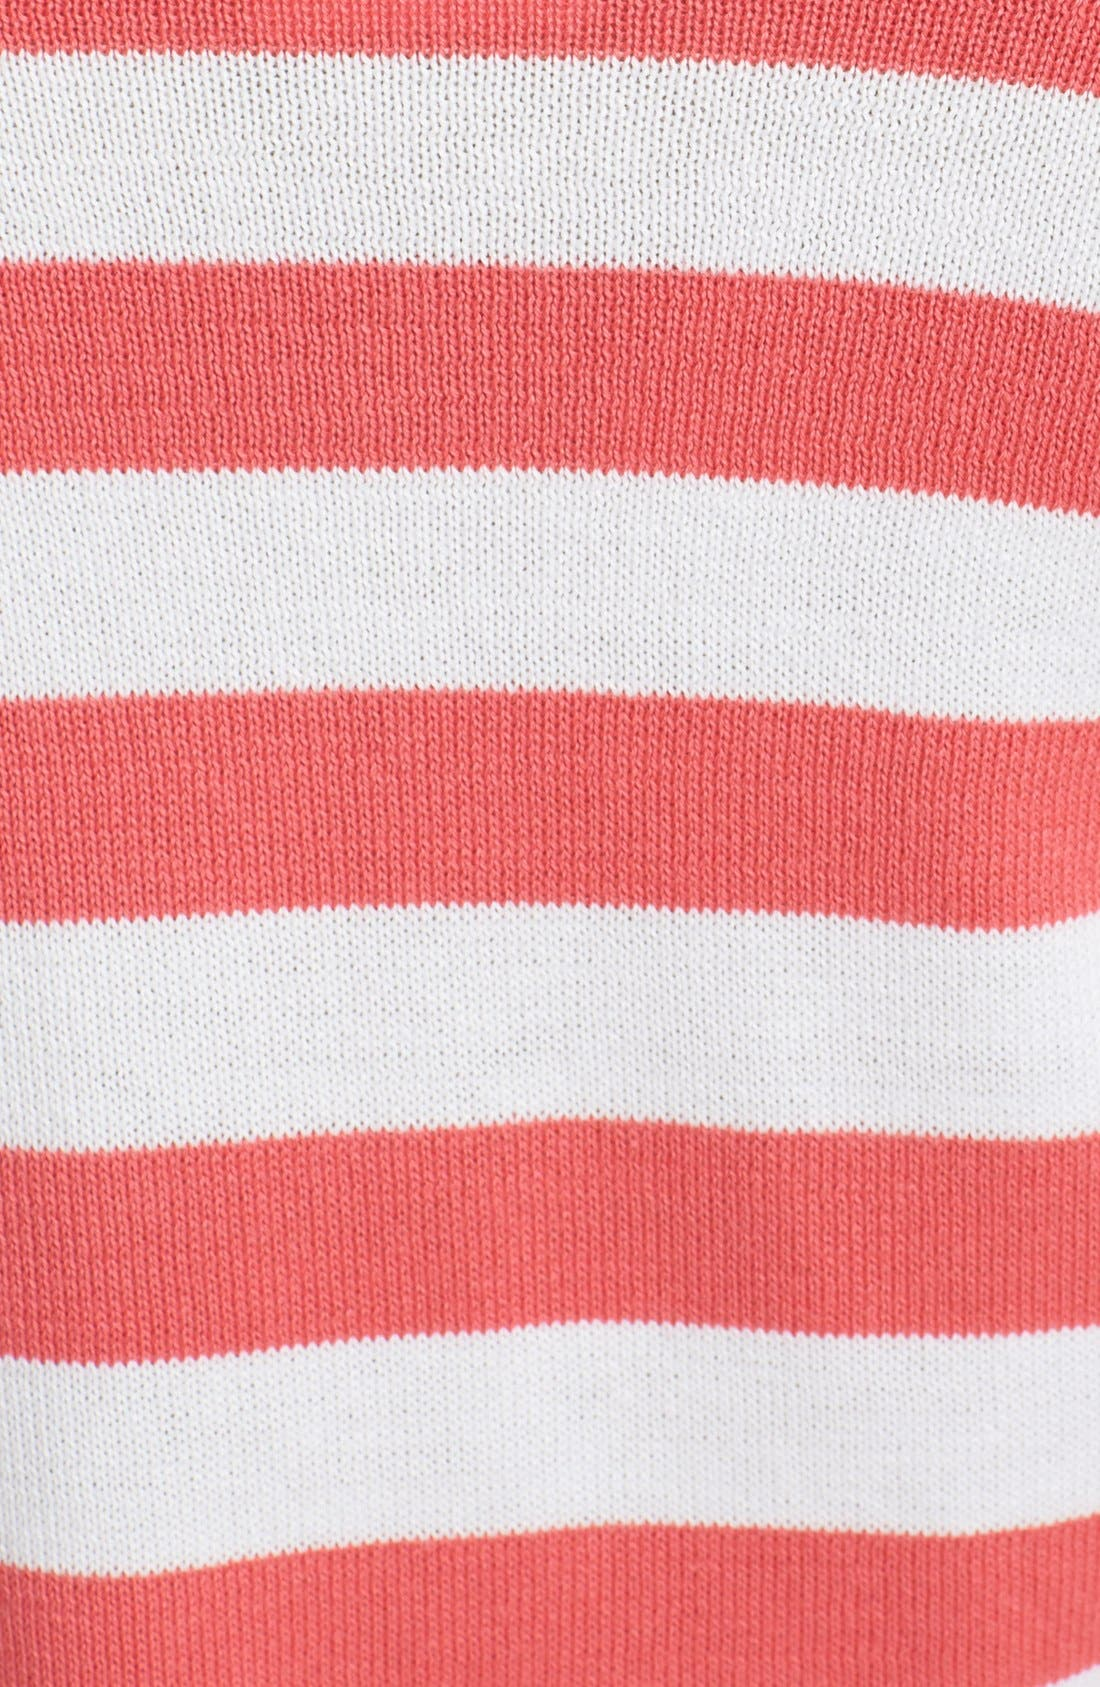 Alternate Image 3  - Two by Vince Camuto 'Simple Stripe' Sweater